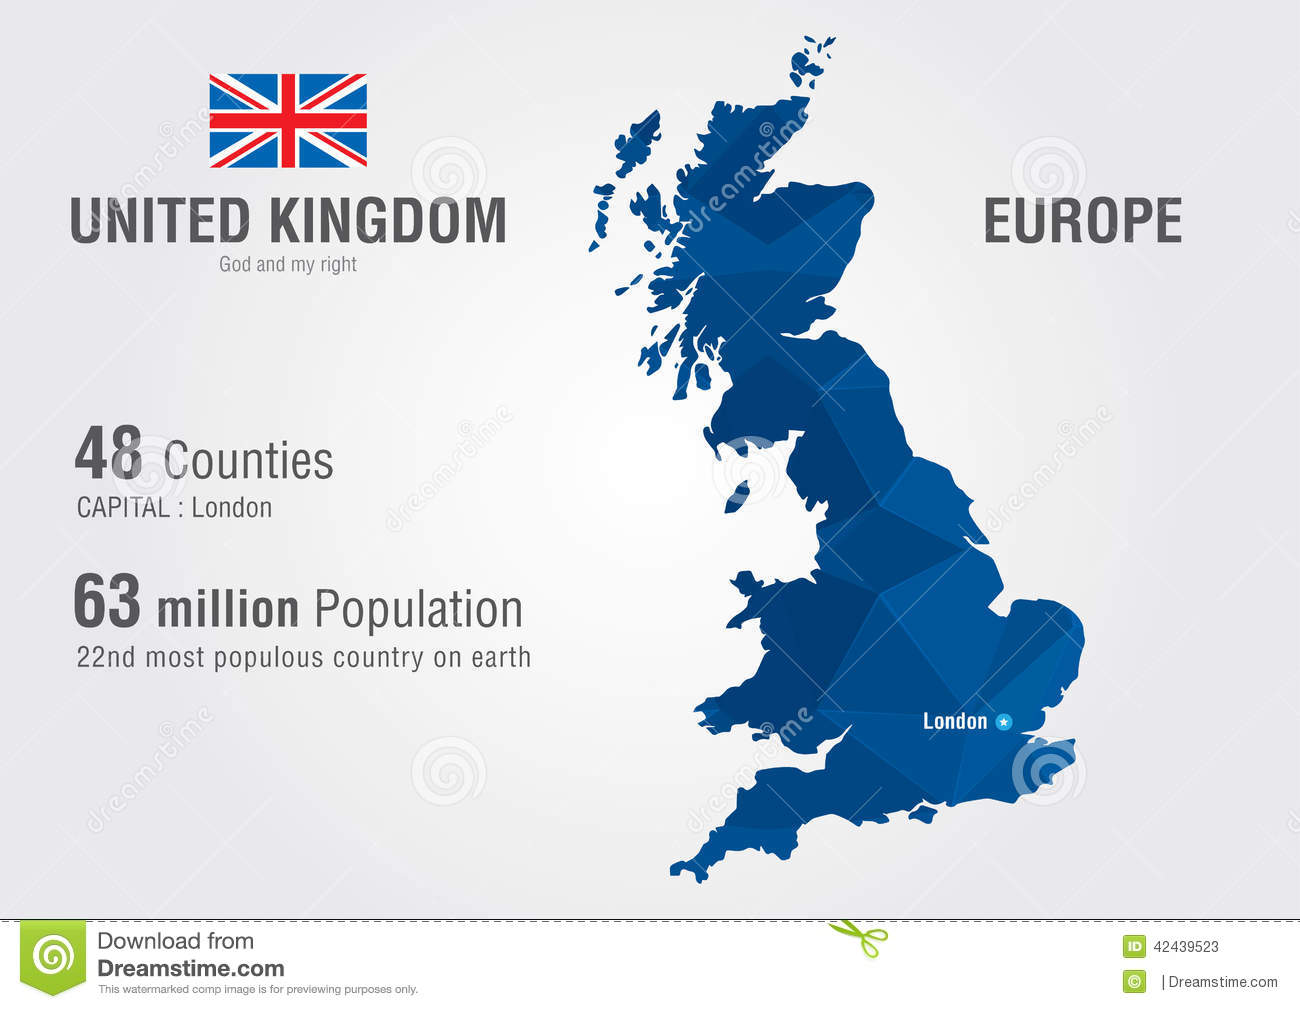 United Kingdom On The World Map.United Kingdom World Map England Map With A Pixel Diamond Texture